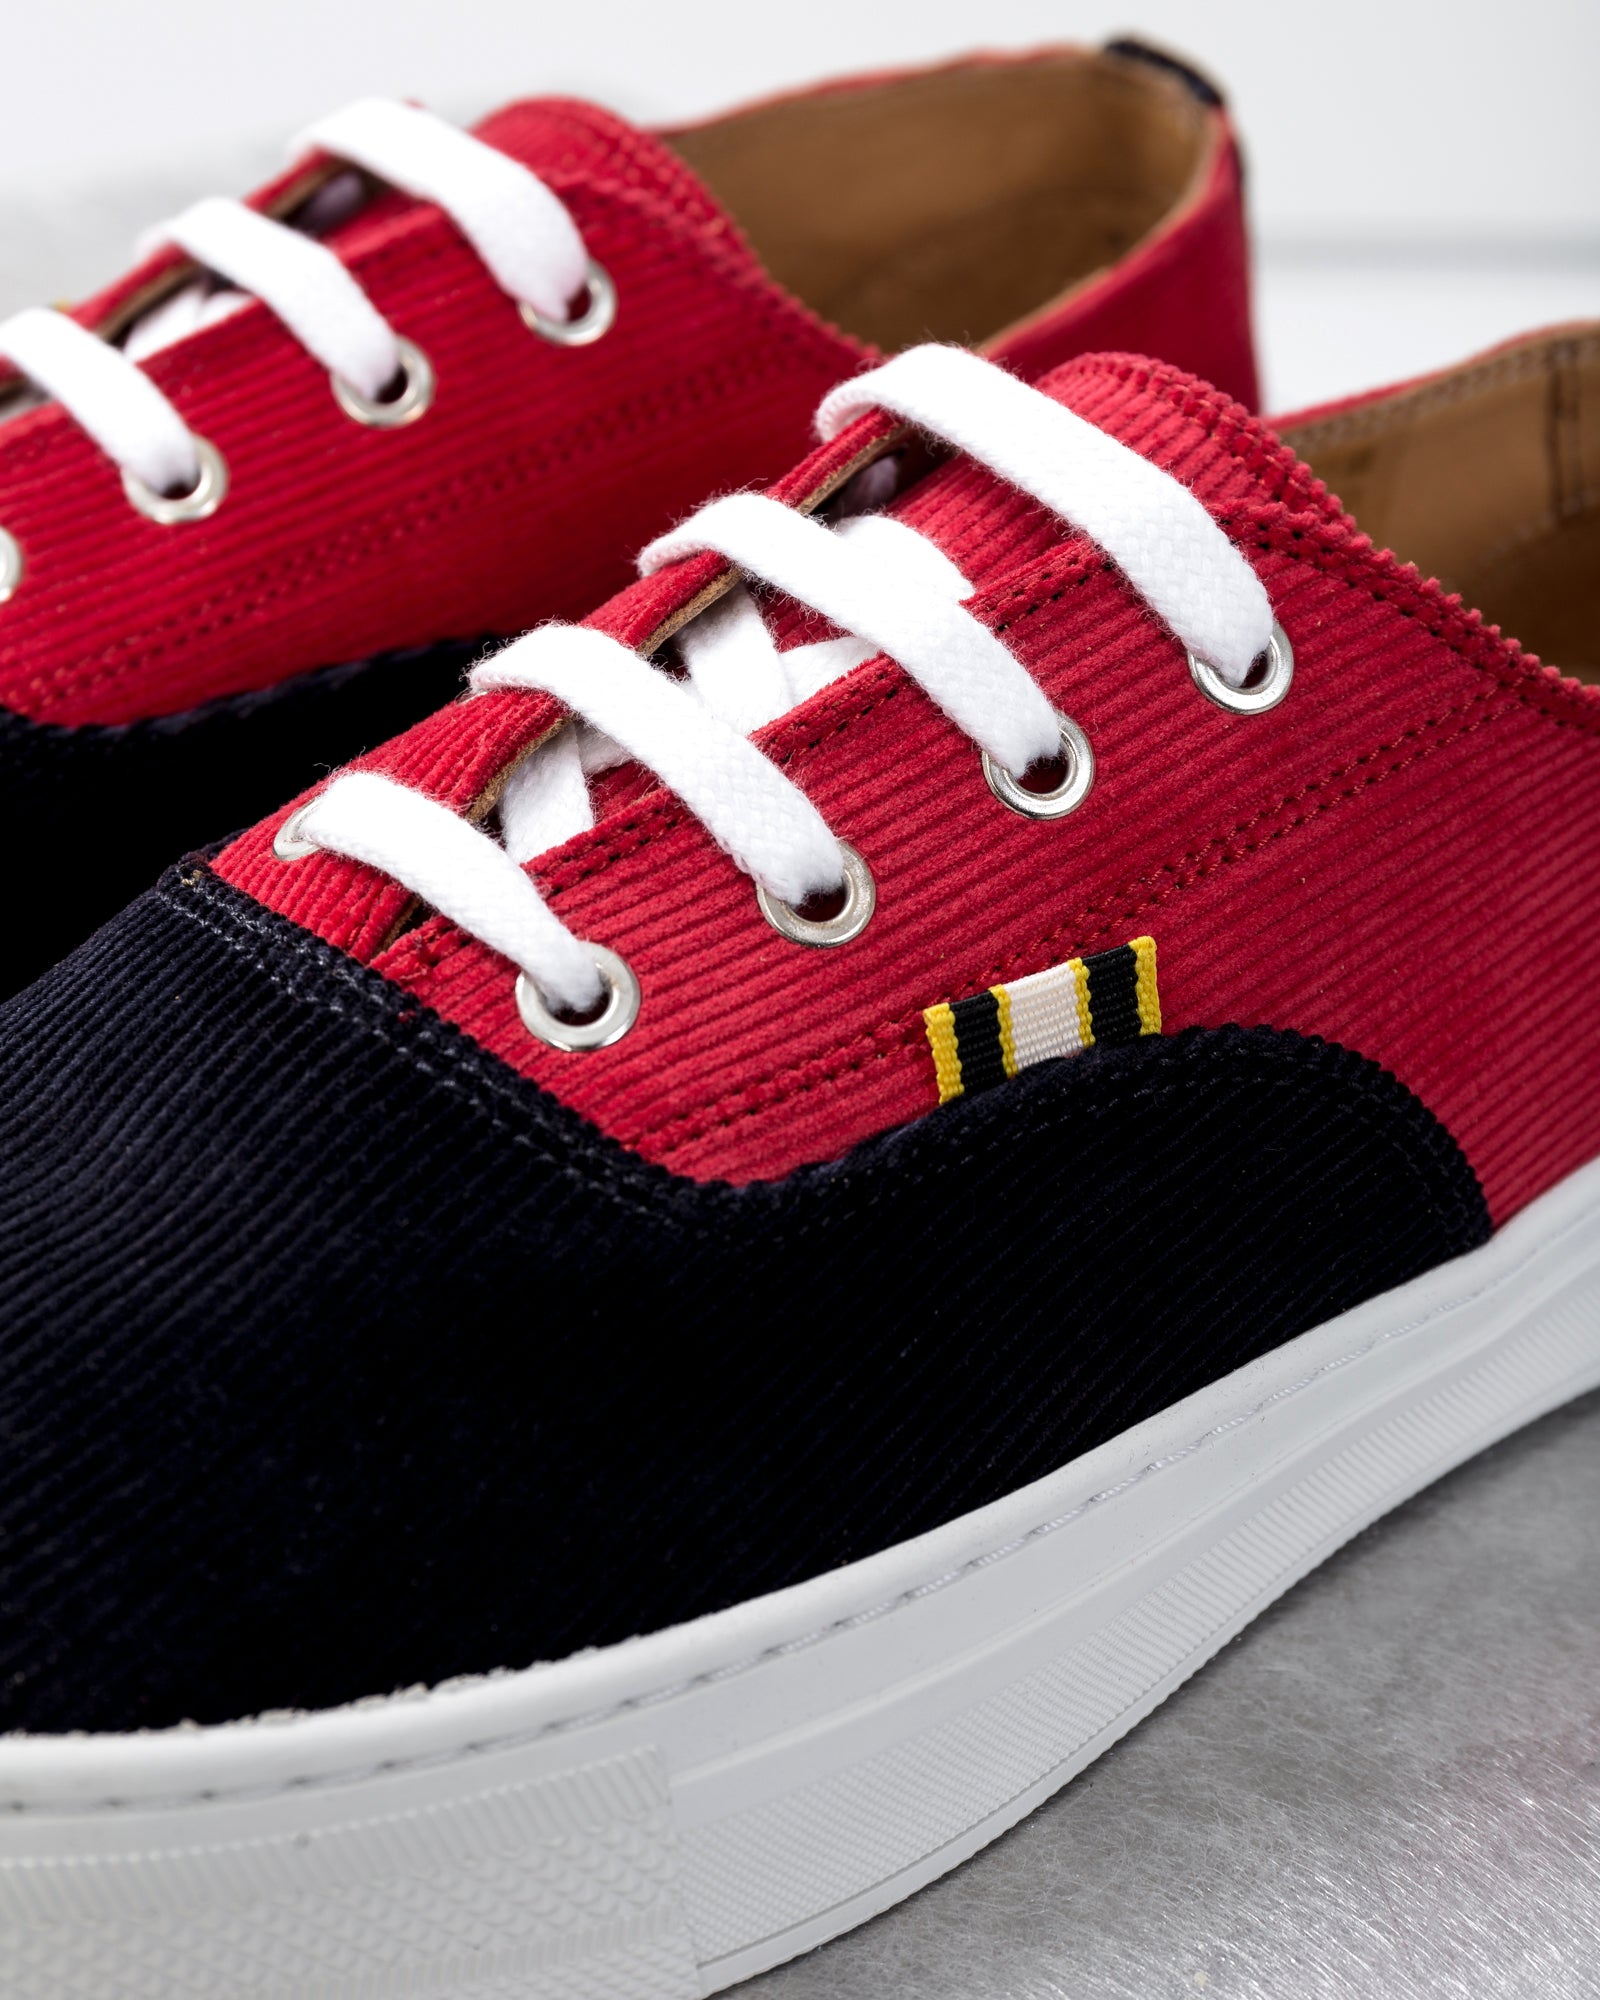 Read more Red & Navy APR-005 Sneakers 2TcOZN